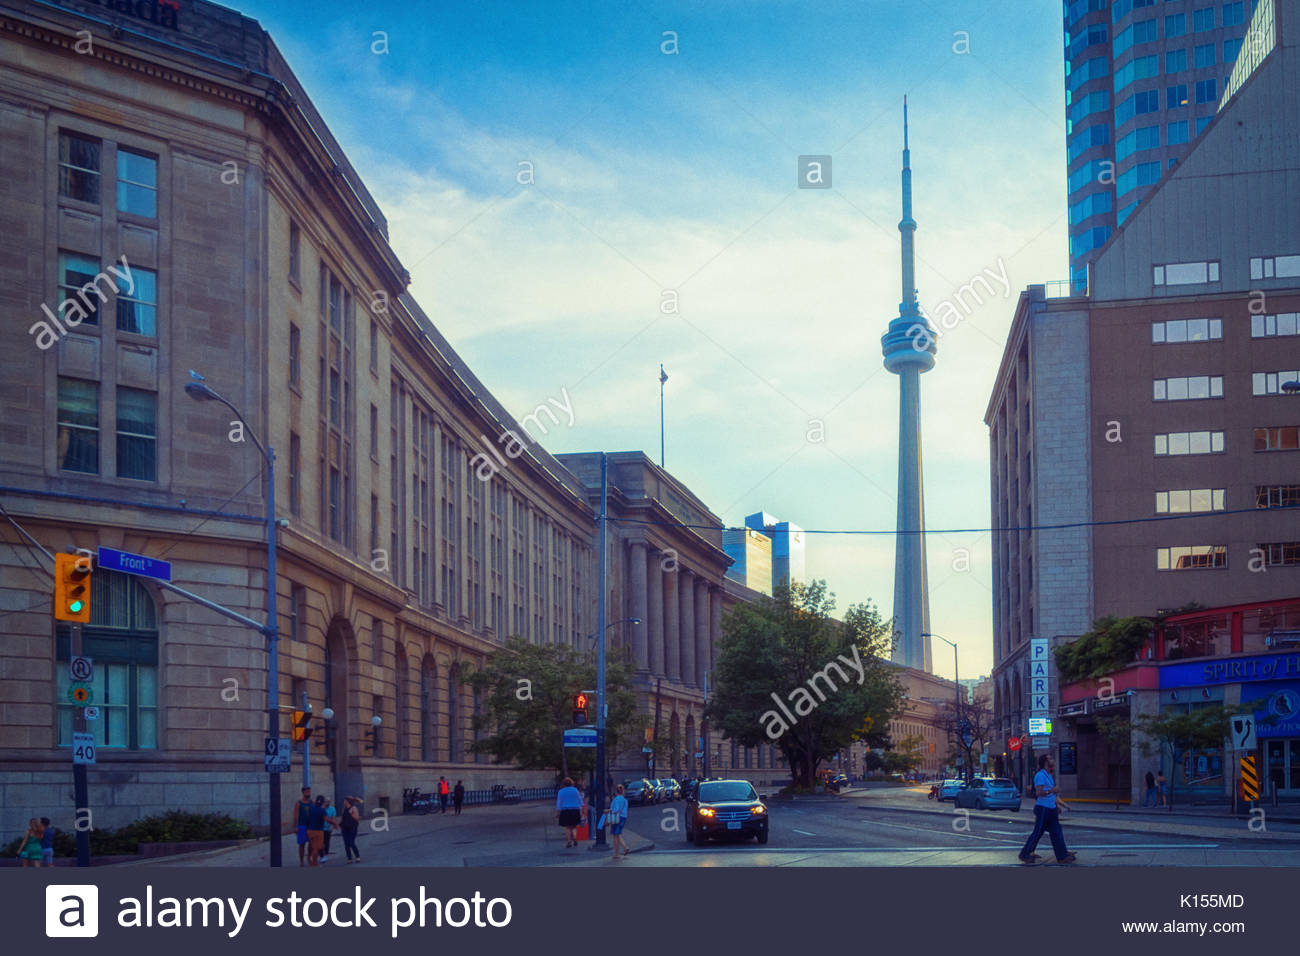 Dominion Public Building (left) is a heritage government building in 1 Front Street West. The landmark is one of the most important examples of Beaux- - Stock Image